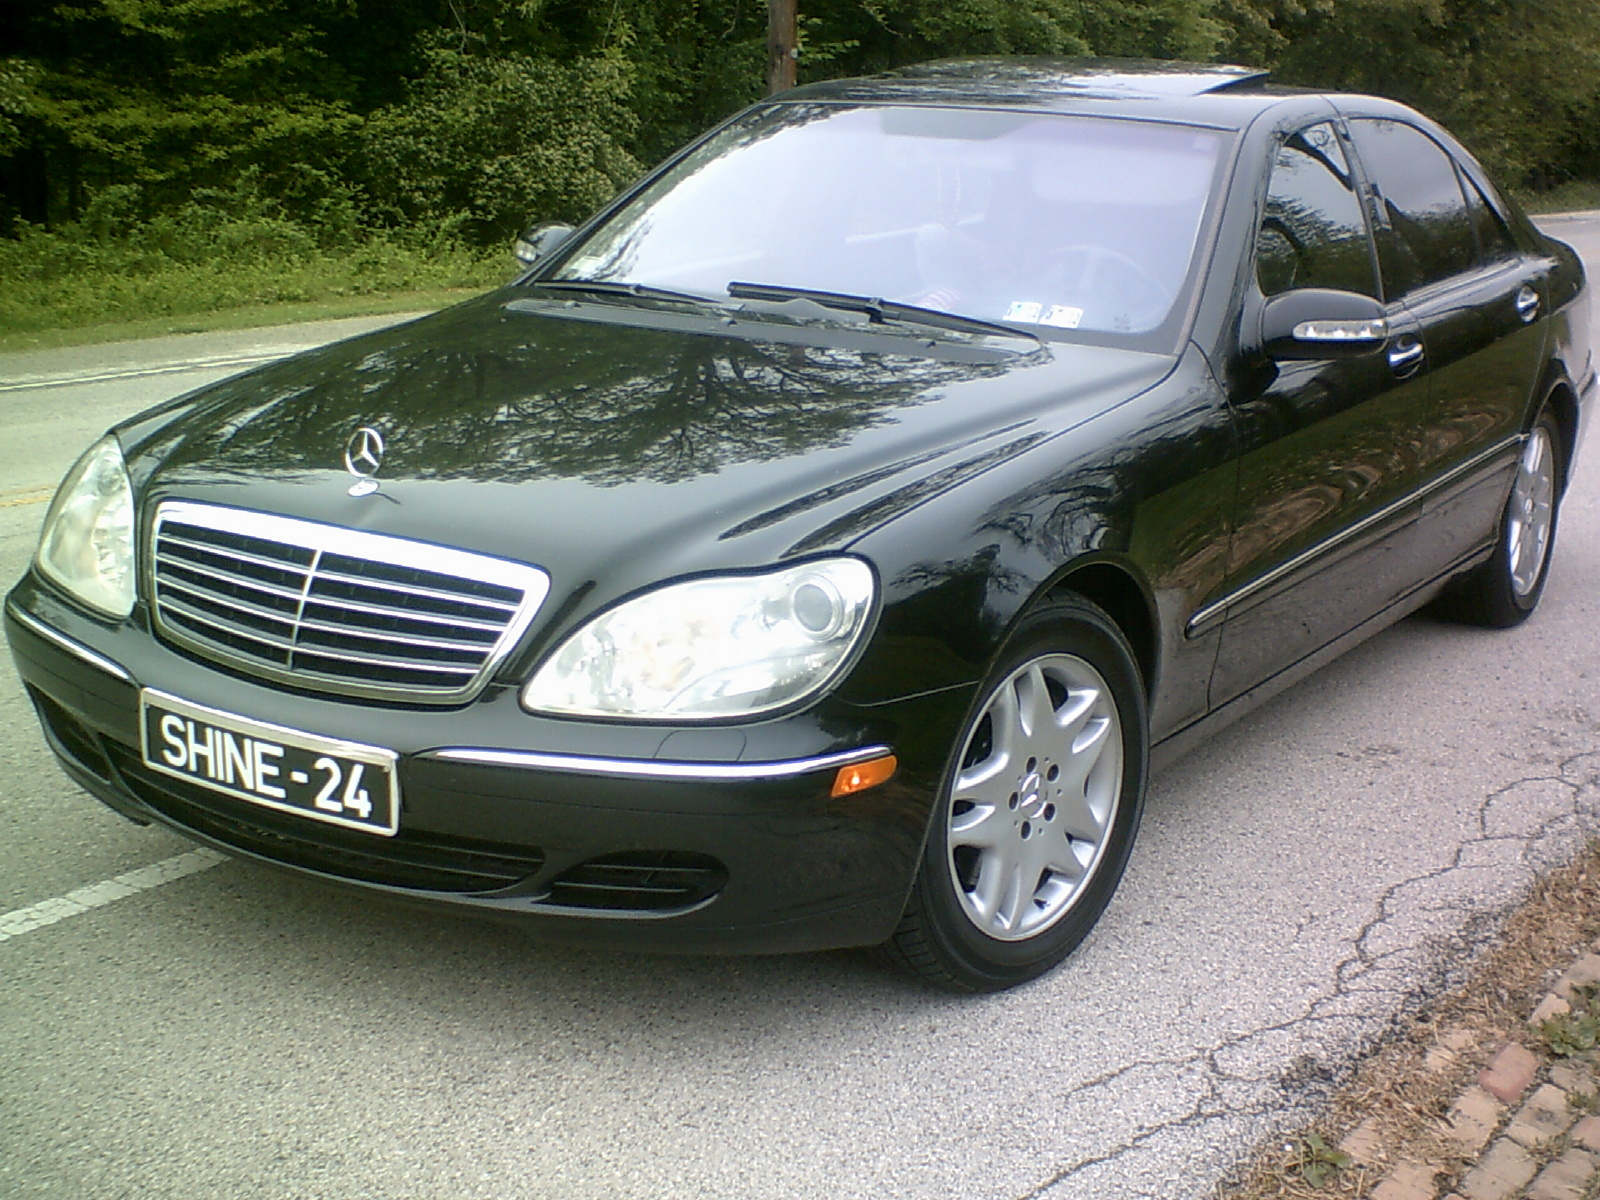 2003 mercedes benz s class exterior pictures cargurus for 2003 s500 mercedes benz